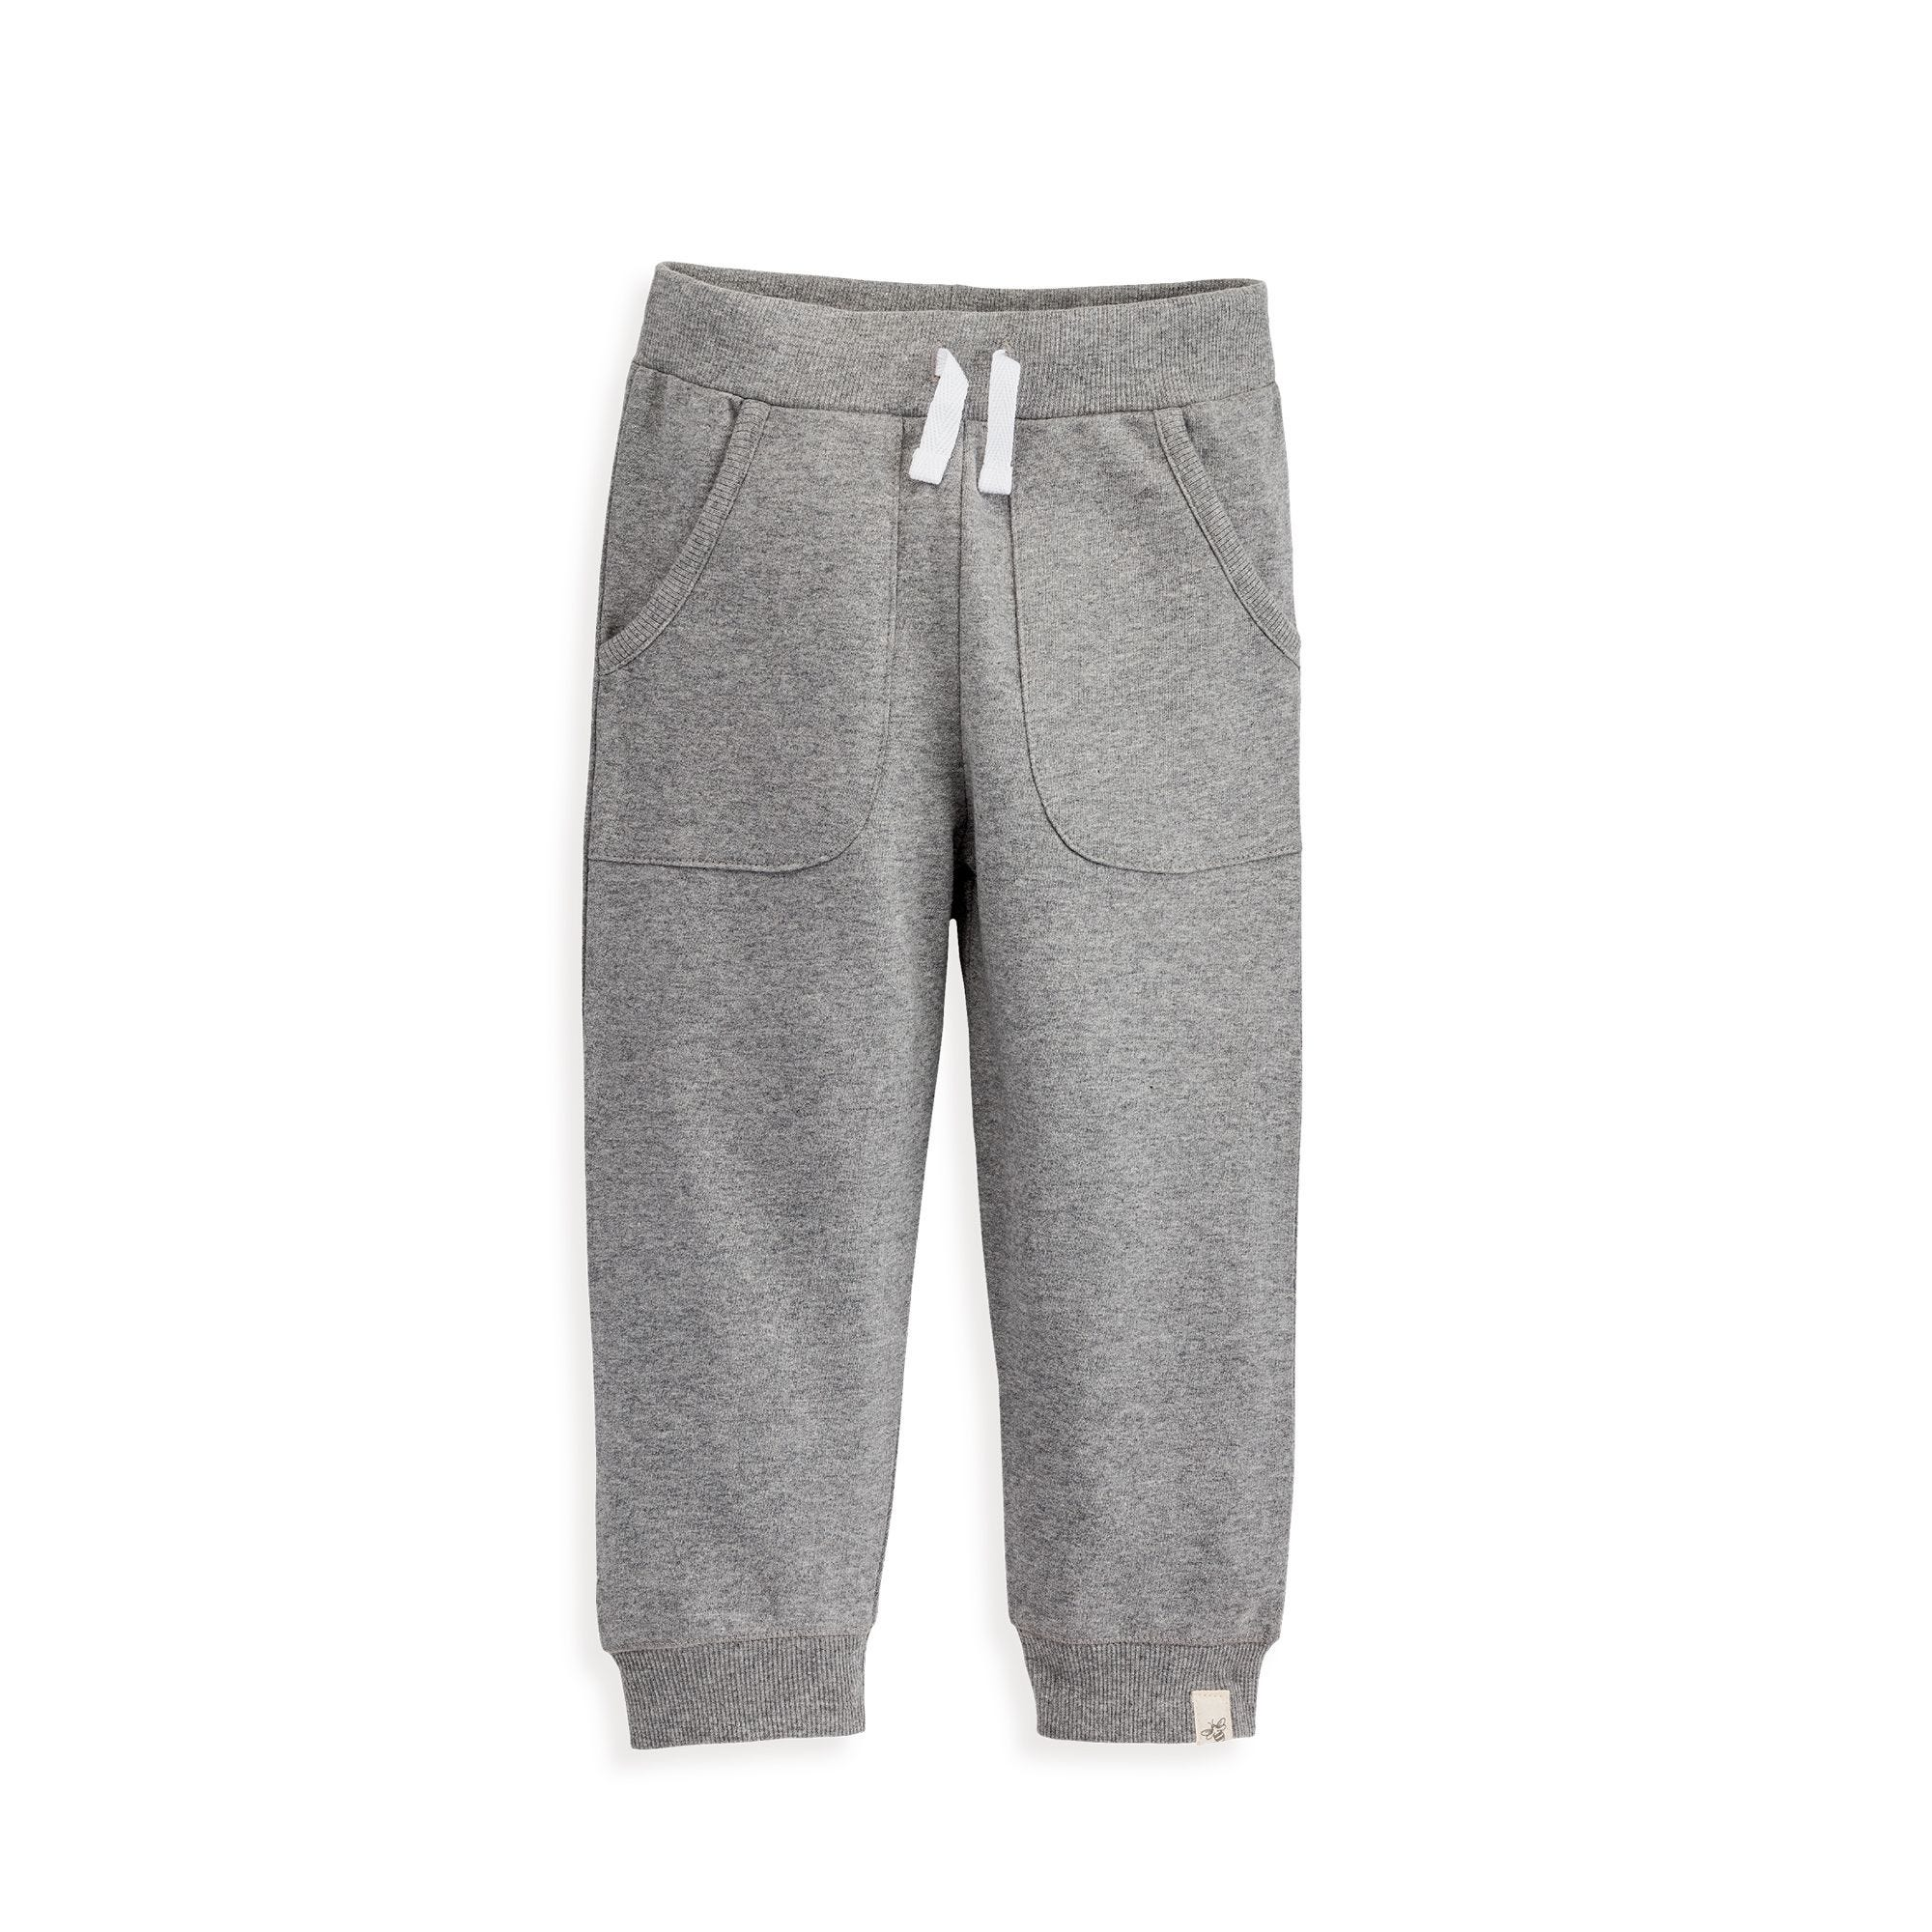 2eaad0d22 French Terry Organic Toddler Boys Jogger Pant